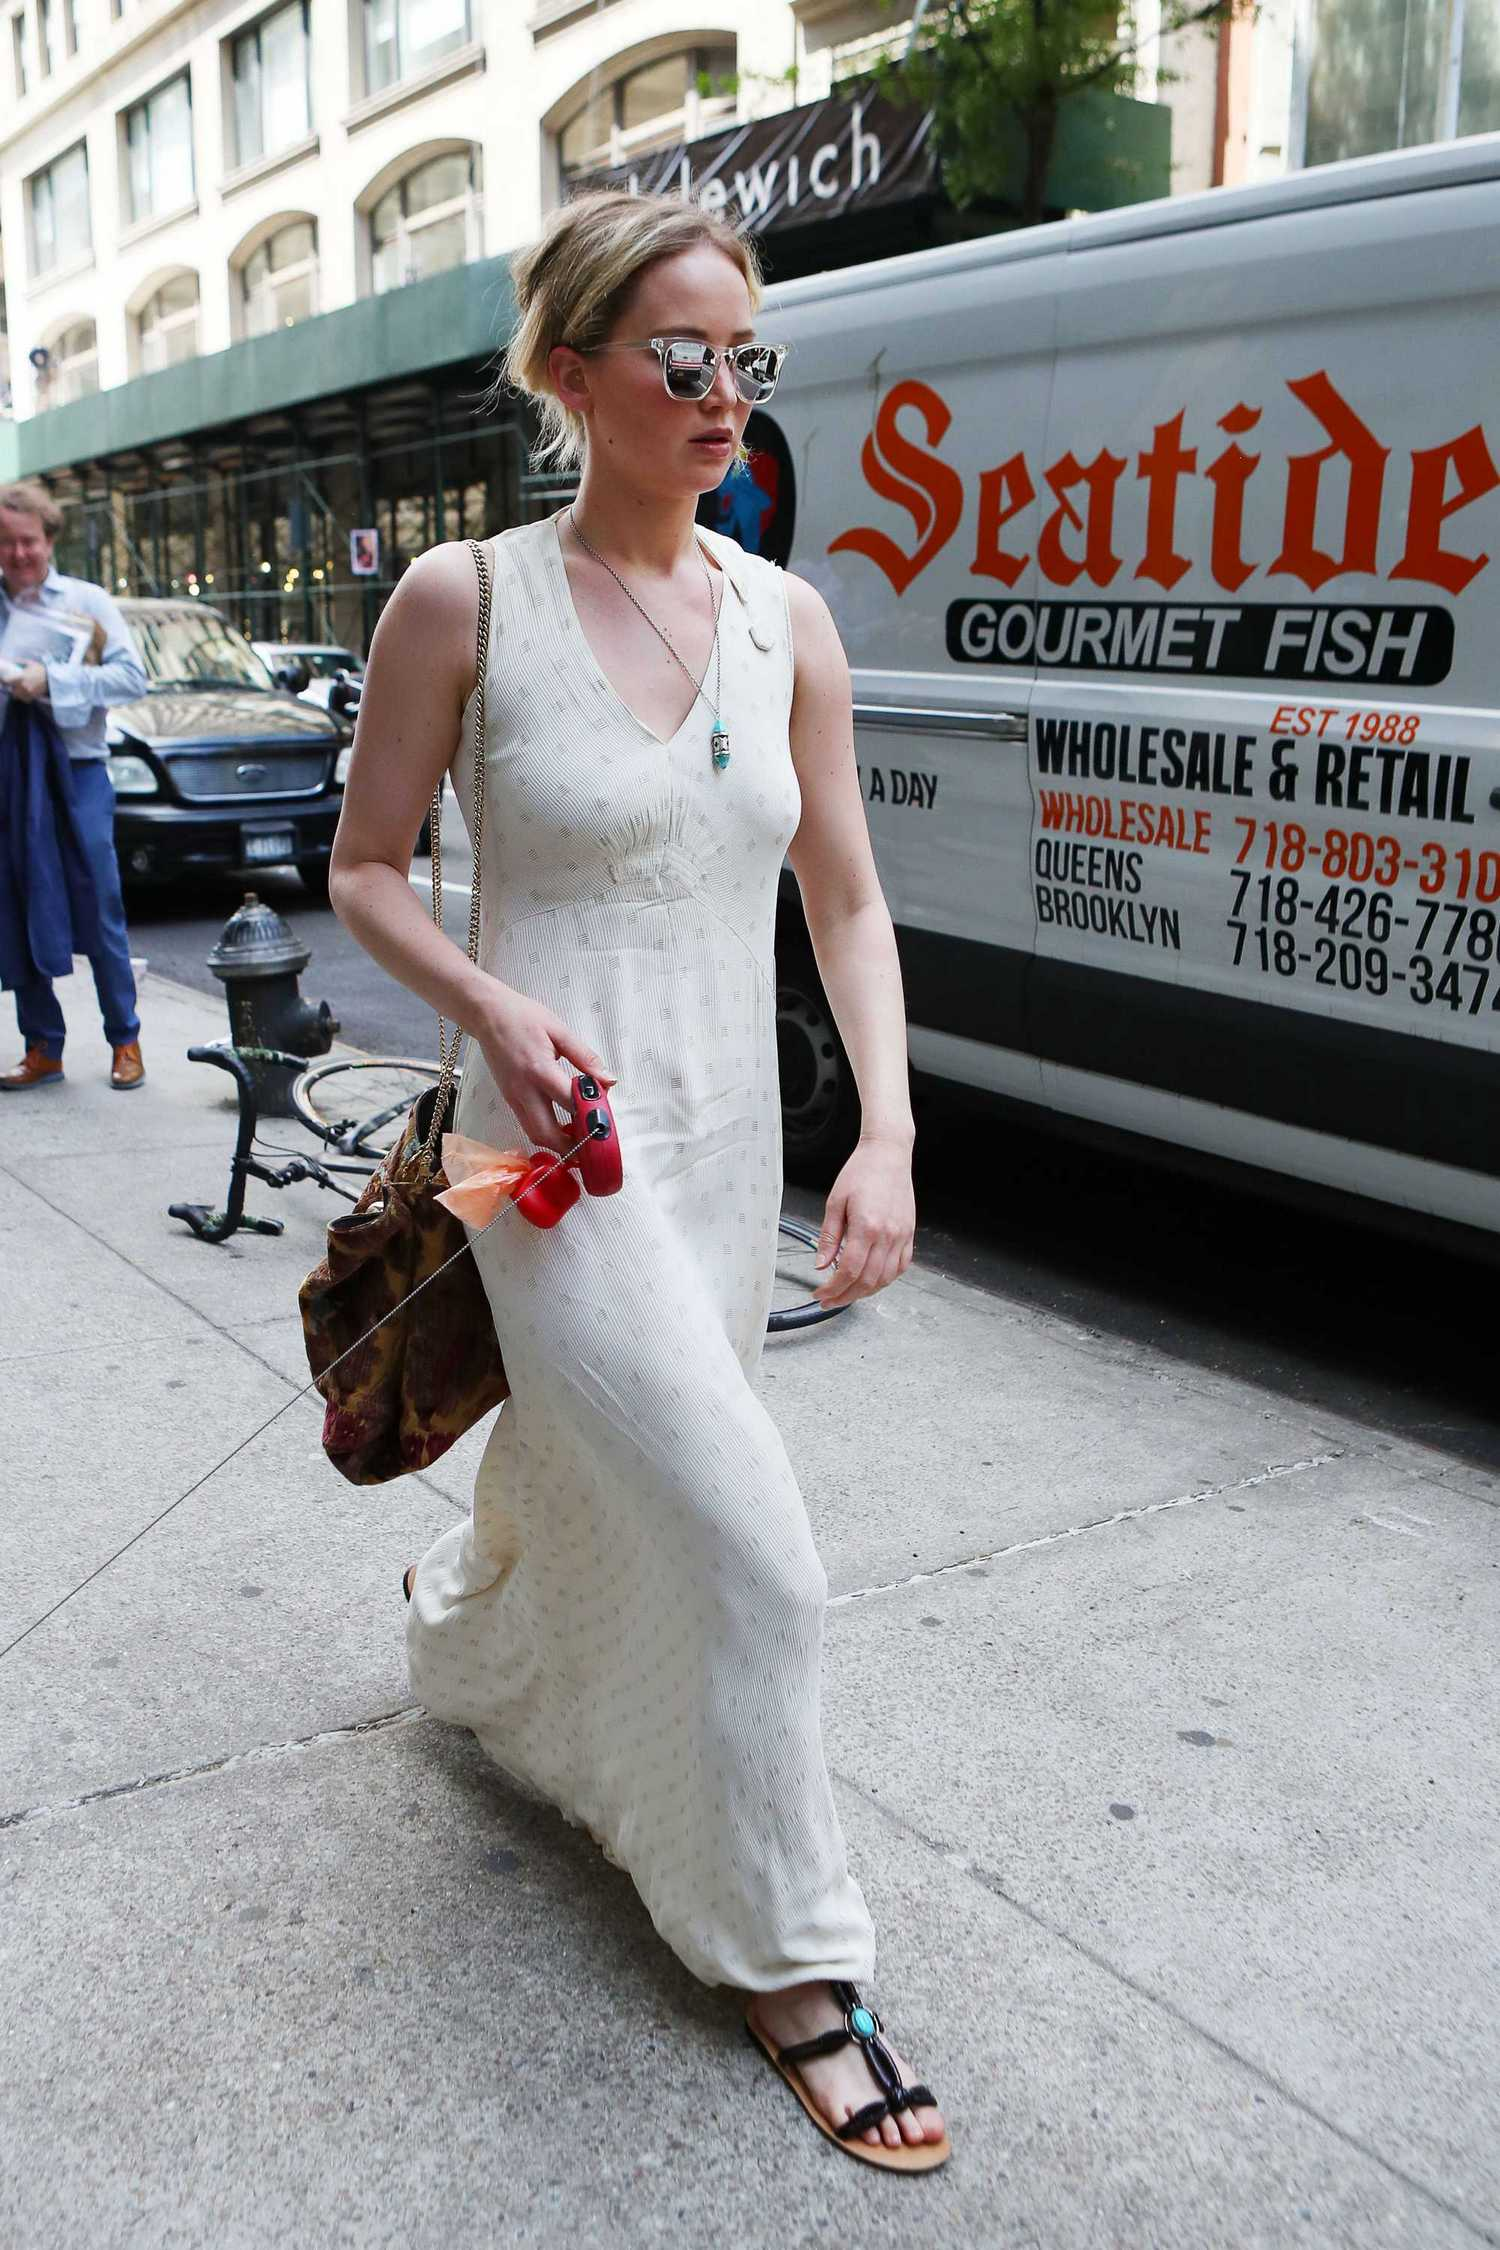 http://jenniferlawrencedaily.com/gallery/albums/userpics/10001/Jennifer_Lawrence_-_Out_in_Manhattan_on_May_19-123.jpg